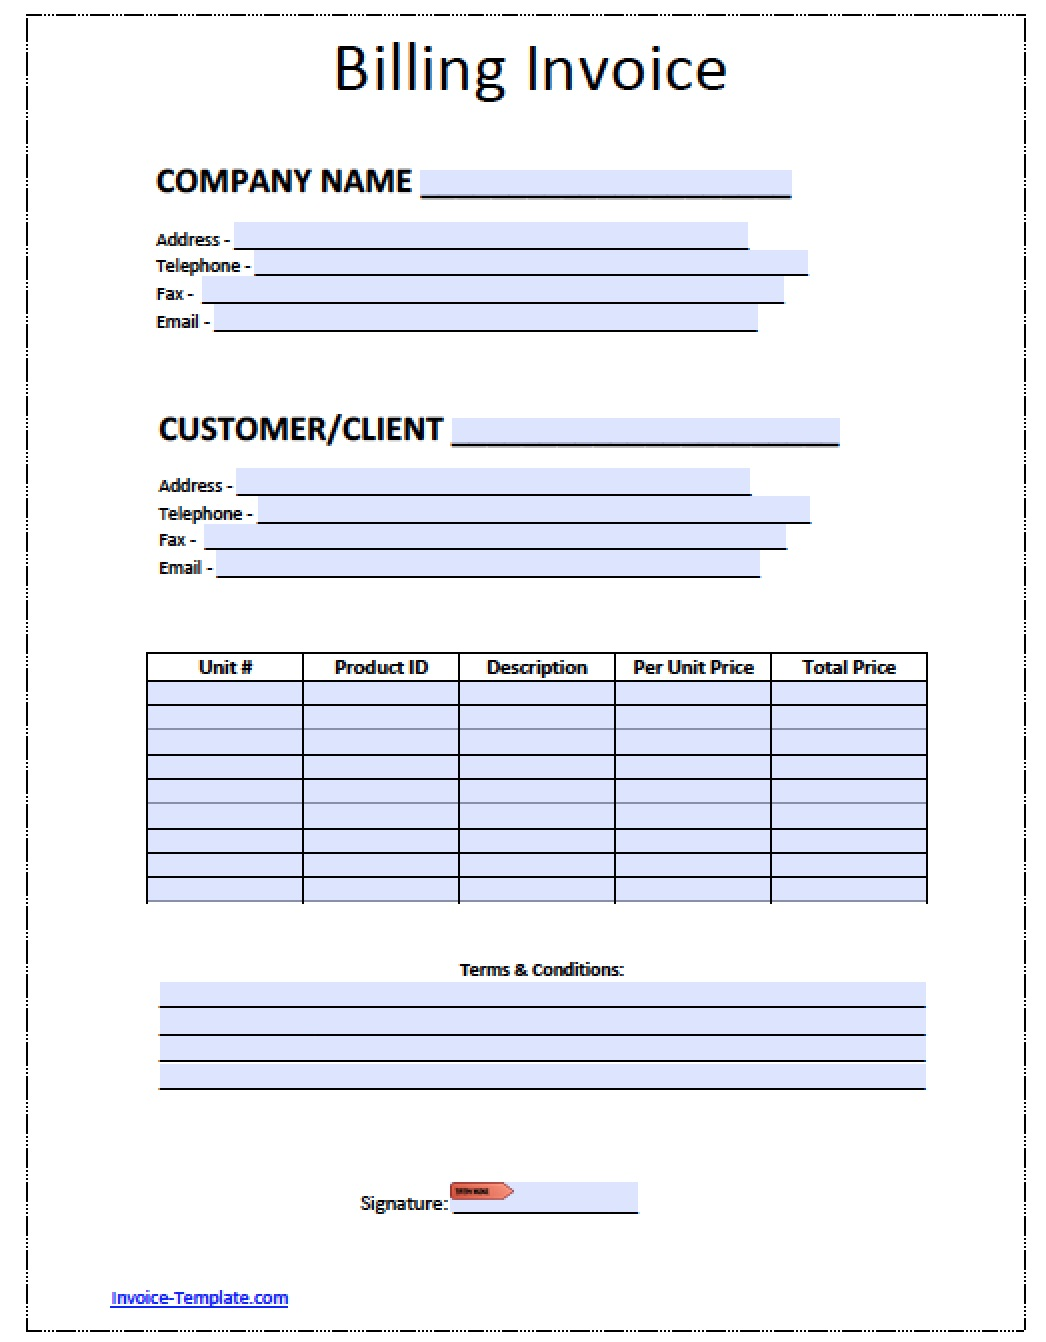 Darkfaderus  Surprising Billing Invoice Invoices Faq U Cloudflare Support Billing  With Luxury Free Billing Invoice Template  Excel  Pdf  Word Doc  Billing With Appealing How To Buy A Car Below Invoice Also Mazda Invoice Price  In Addition How To Find Car Dealer Invoice Price And Invoice Templte As Well As Kelley Blue Book Invoice Price Additionally Free Printable Invoice Template Pdf From Happytomco With Darkfaderus  Luxury Billing Invoice Invoices Faq U Cloudflare Support Billing  With Appealing Free Billing Invoice Template  Excel  Pdf  Word Doc  Billing And Surprising How To Buy A Car Below Invoice Also Mazda Invoice Price  In Addition How To Find Car Dealer Invoice Price From Happytomco